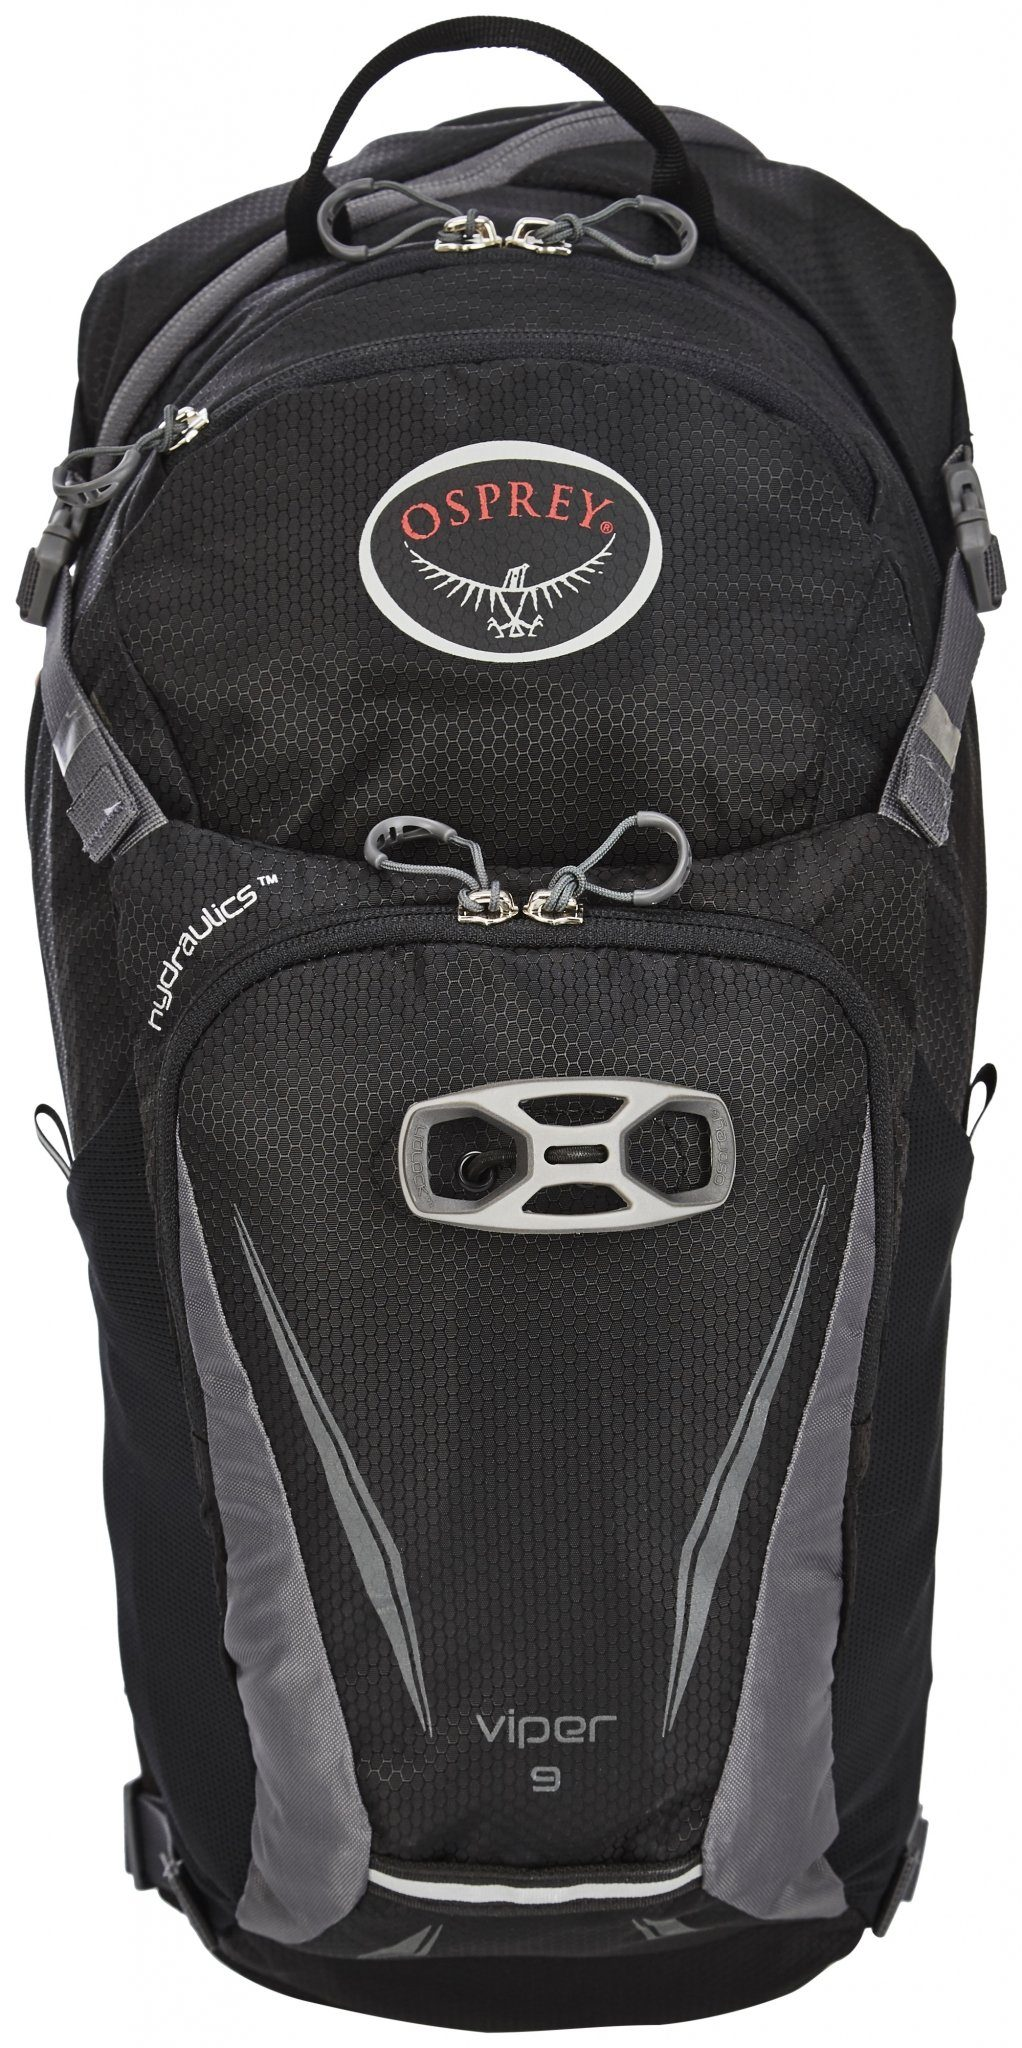 Osprey Rucksack »Viper 9 Backpack Men«